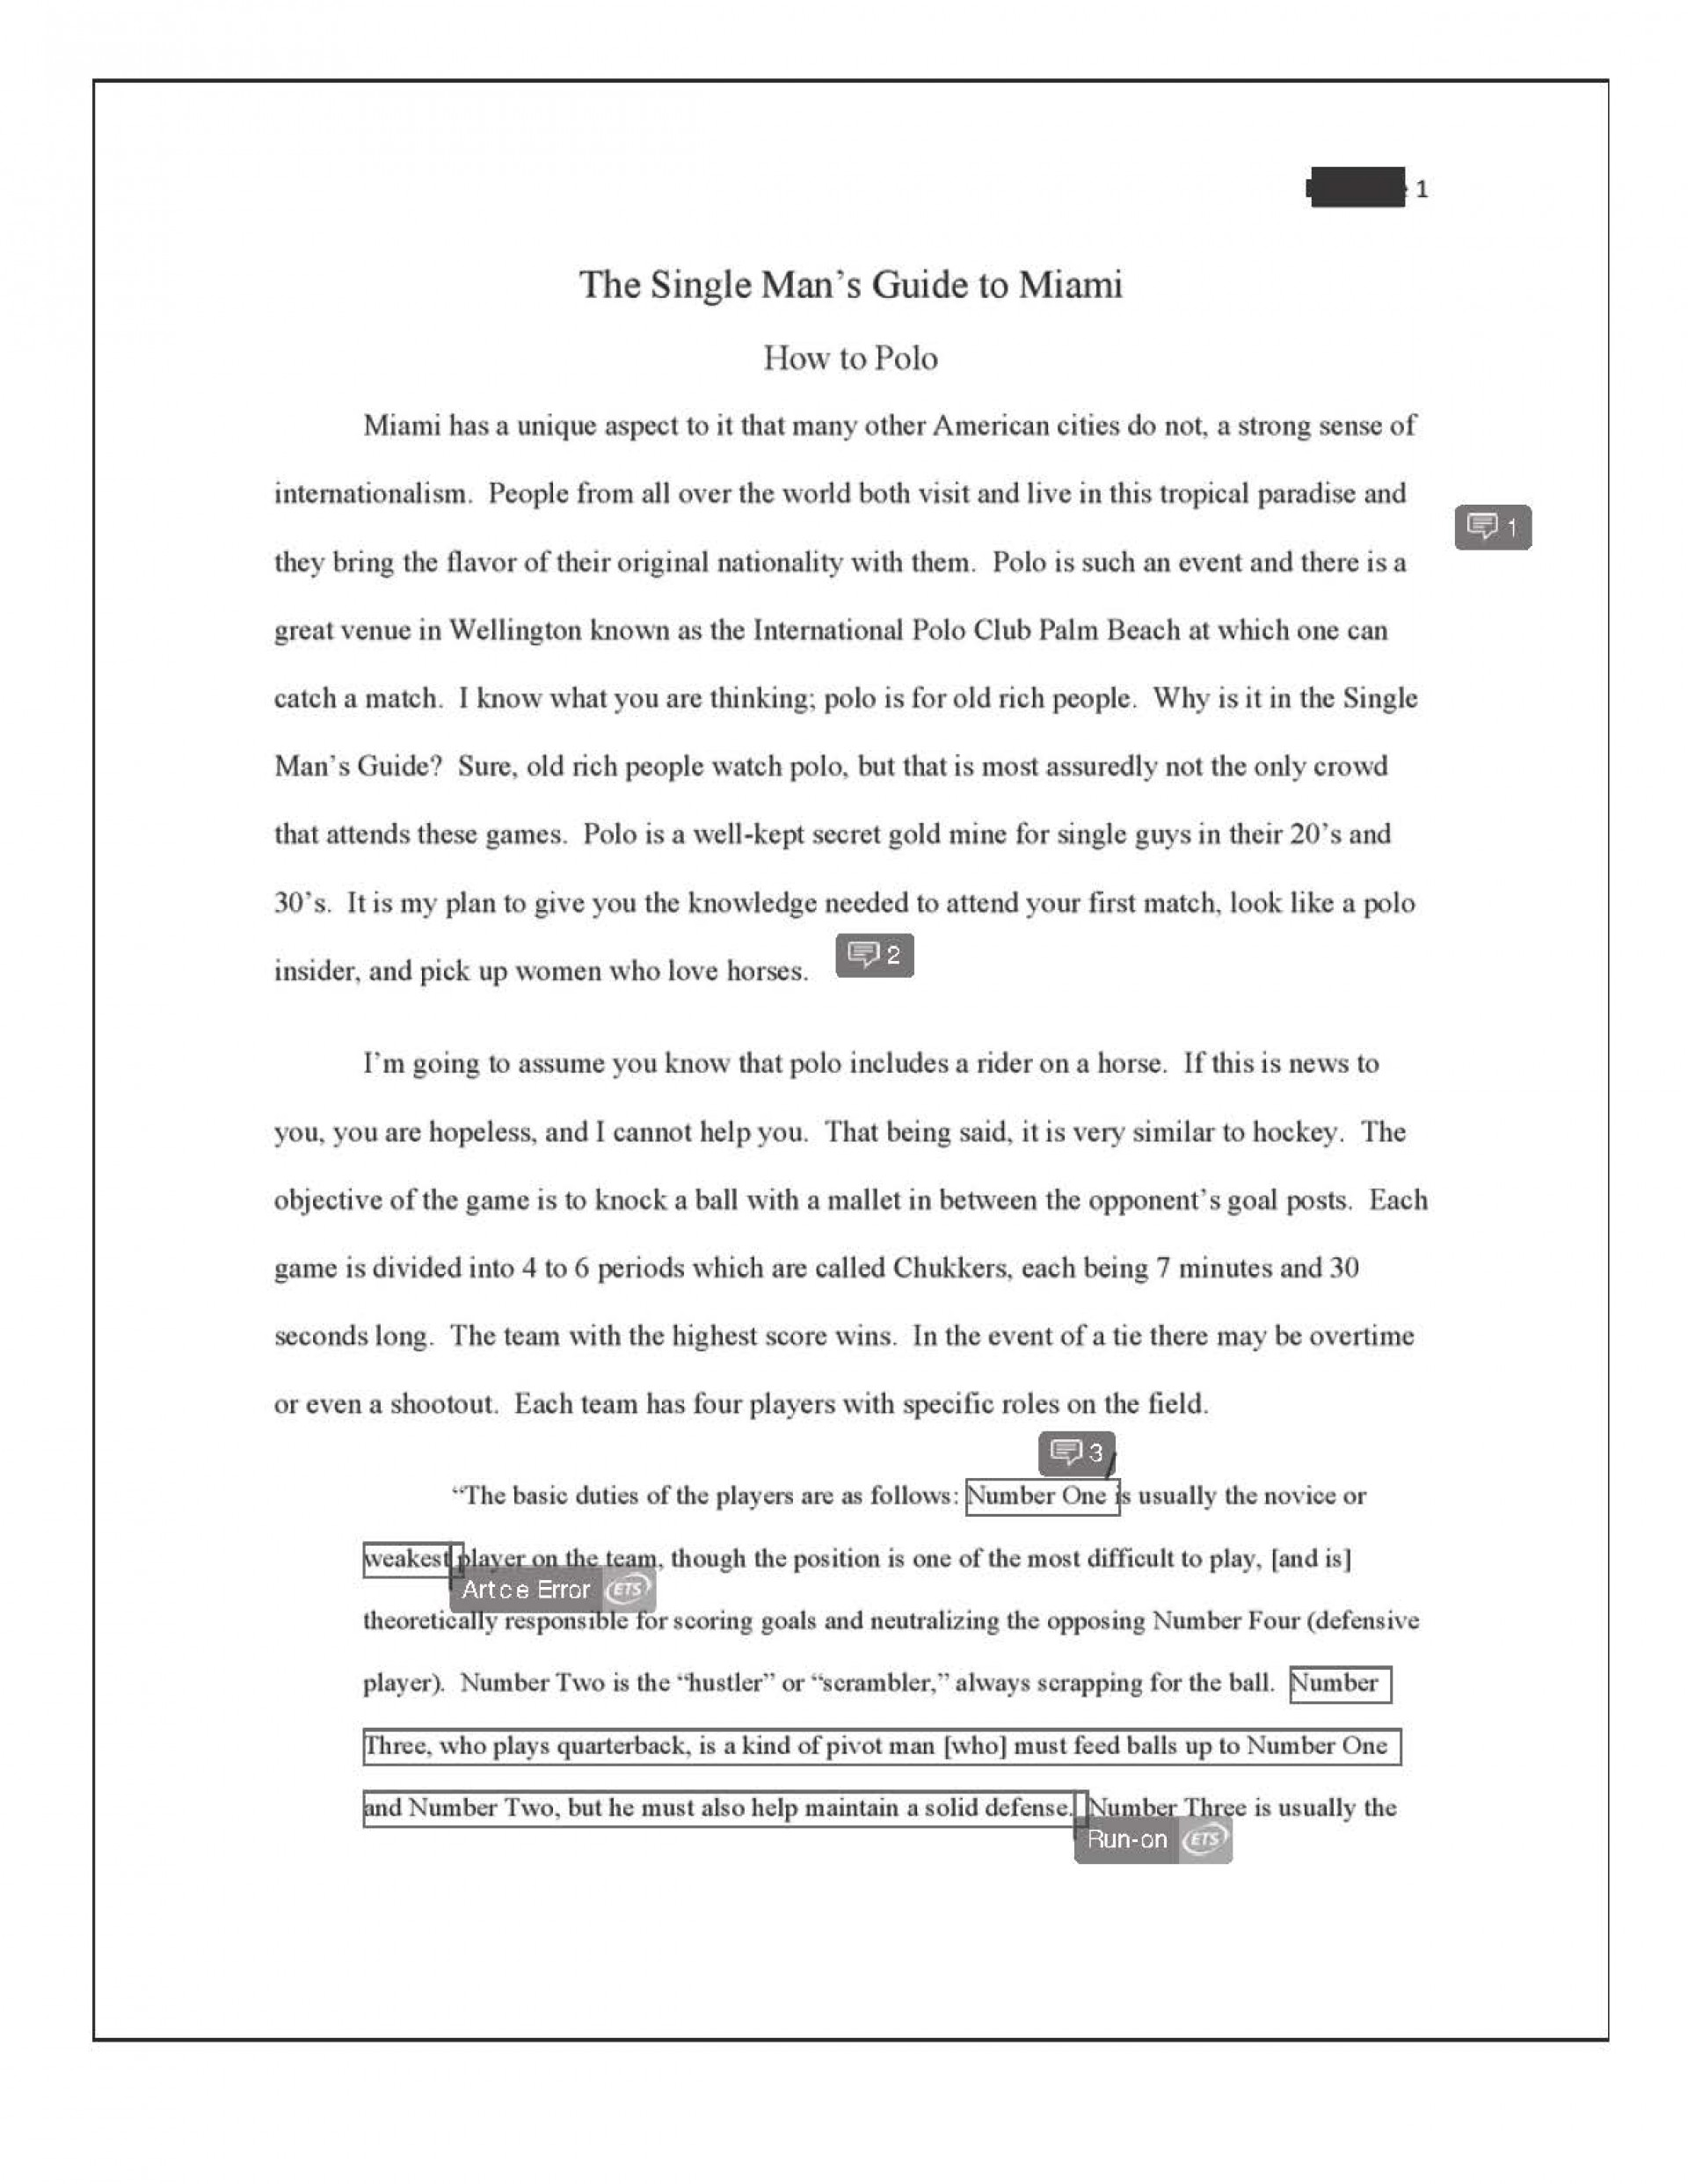 009 Informative Essay Final How To Polo Redacted Page Fresh Short Example Stirring Of About Love Pdf 1920